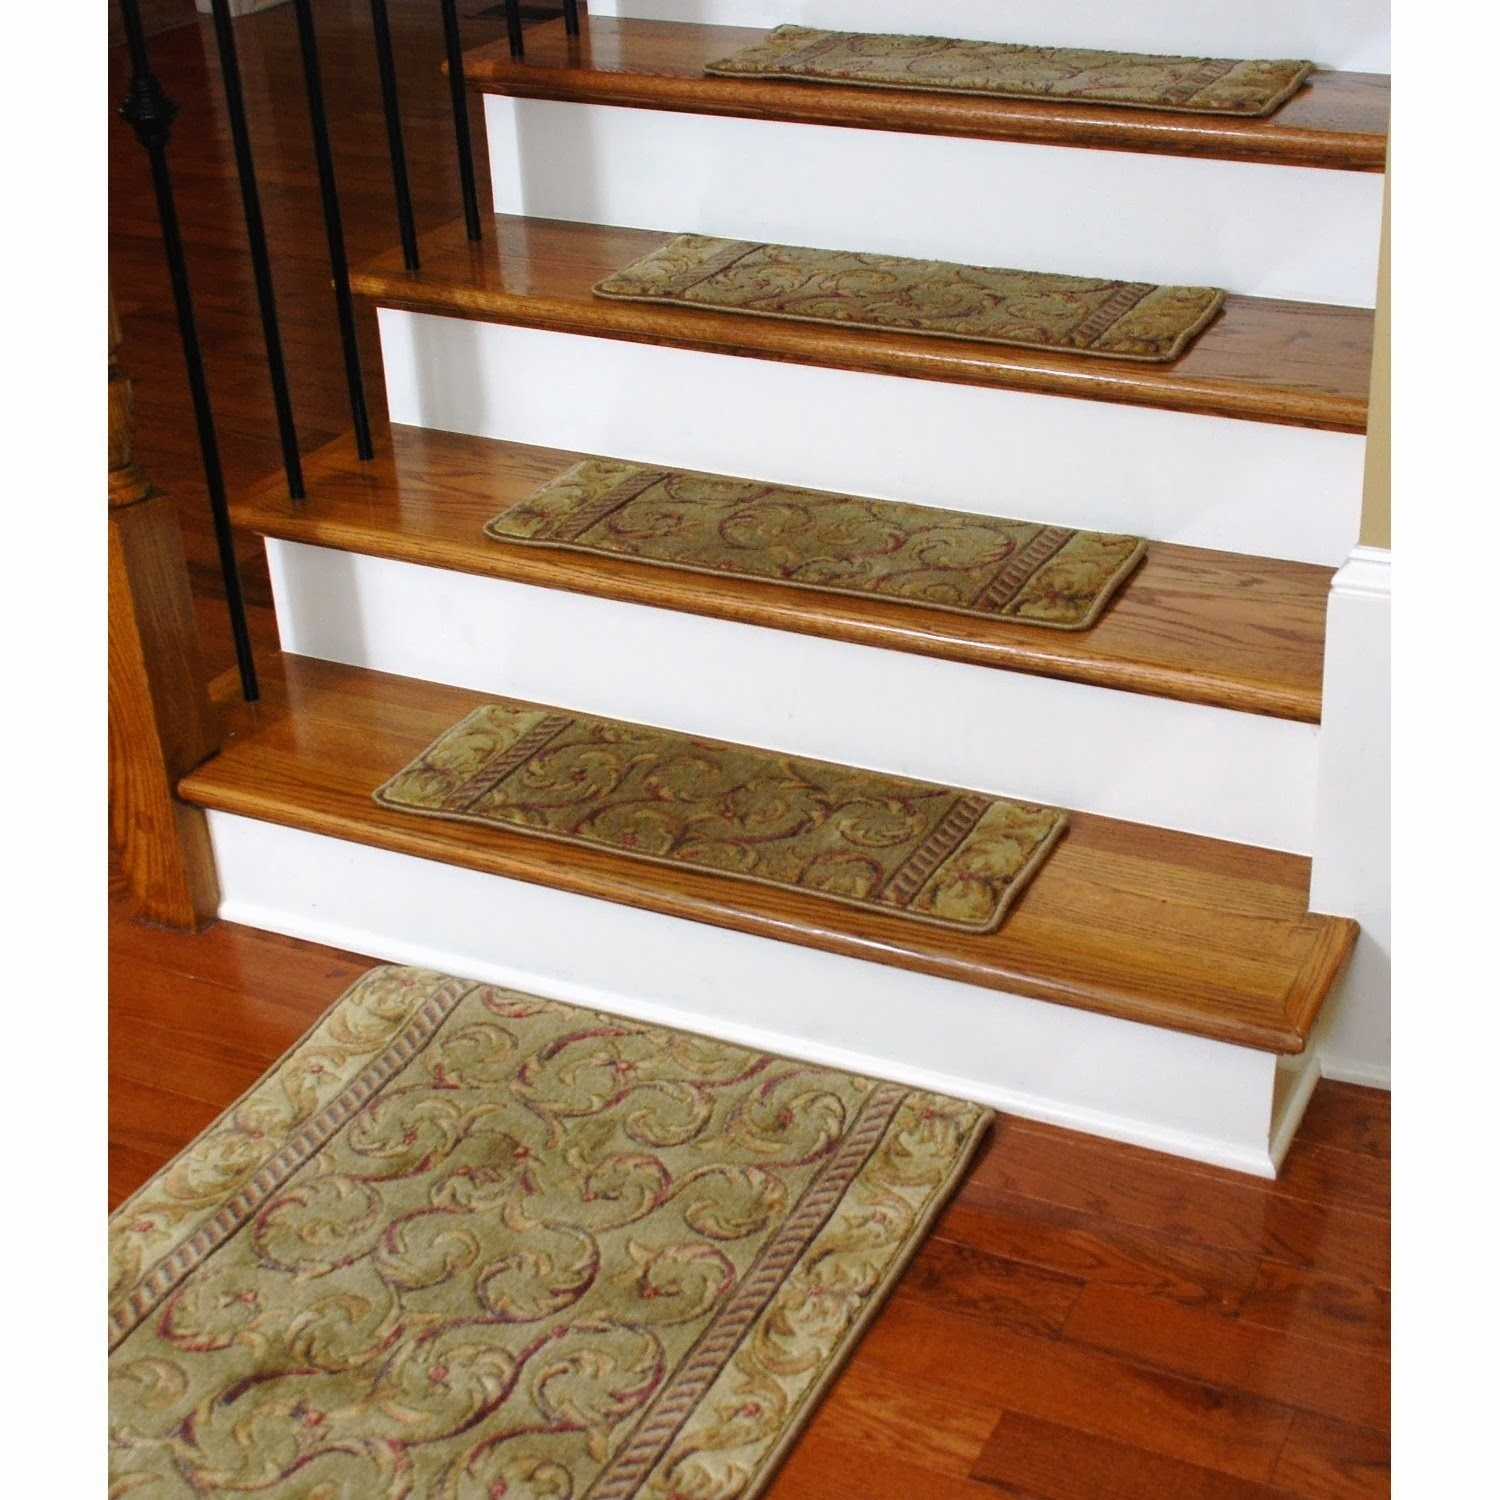 Awesome Carpet Stair Treads Design Irpmi For Carpet Stair Treads And Rugs (Image 2 of 15)